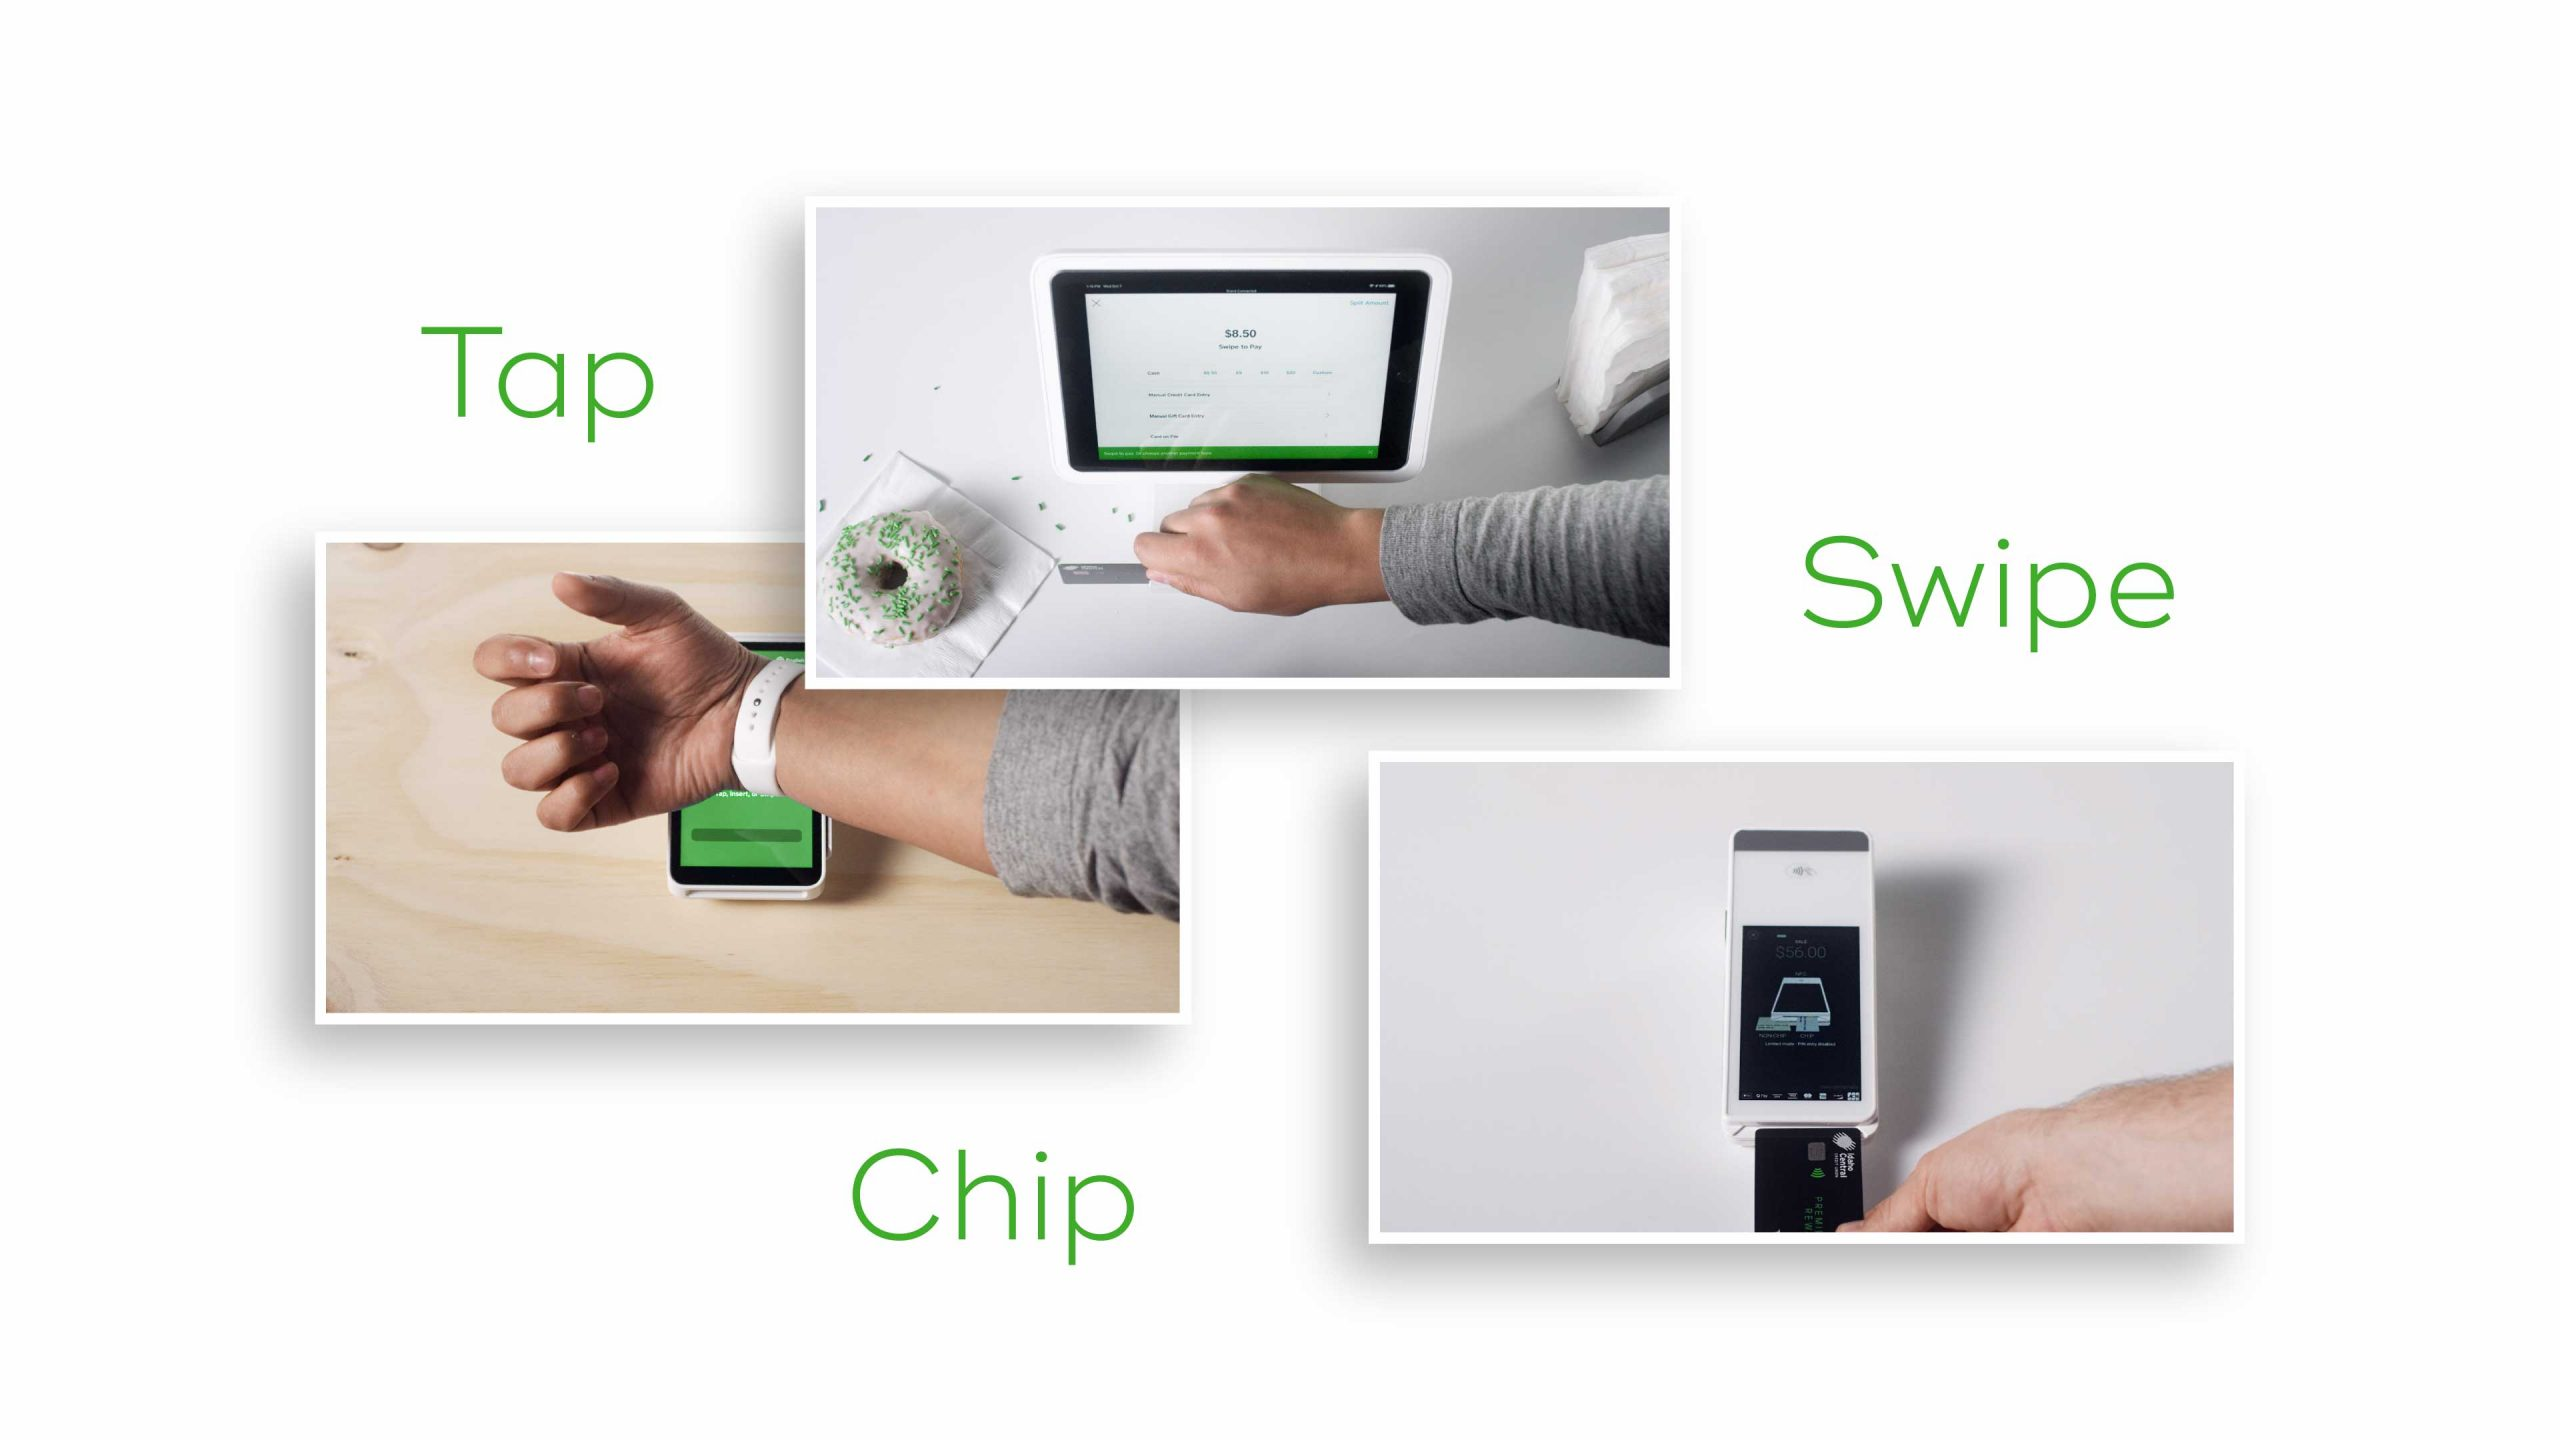 Three thumbnails of a different payment methods using a watch, swiping a card, using a card chip with the text Tap Swipe Chip